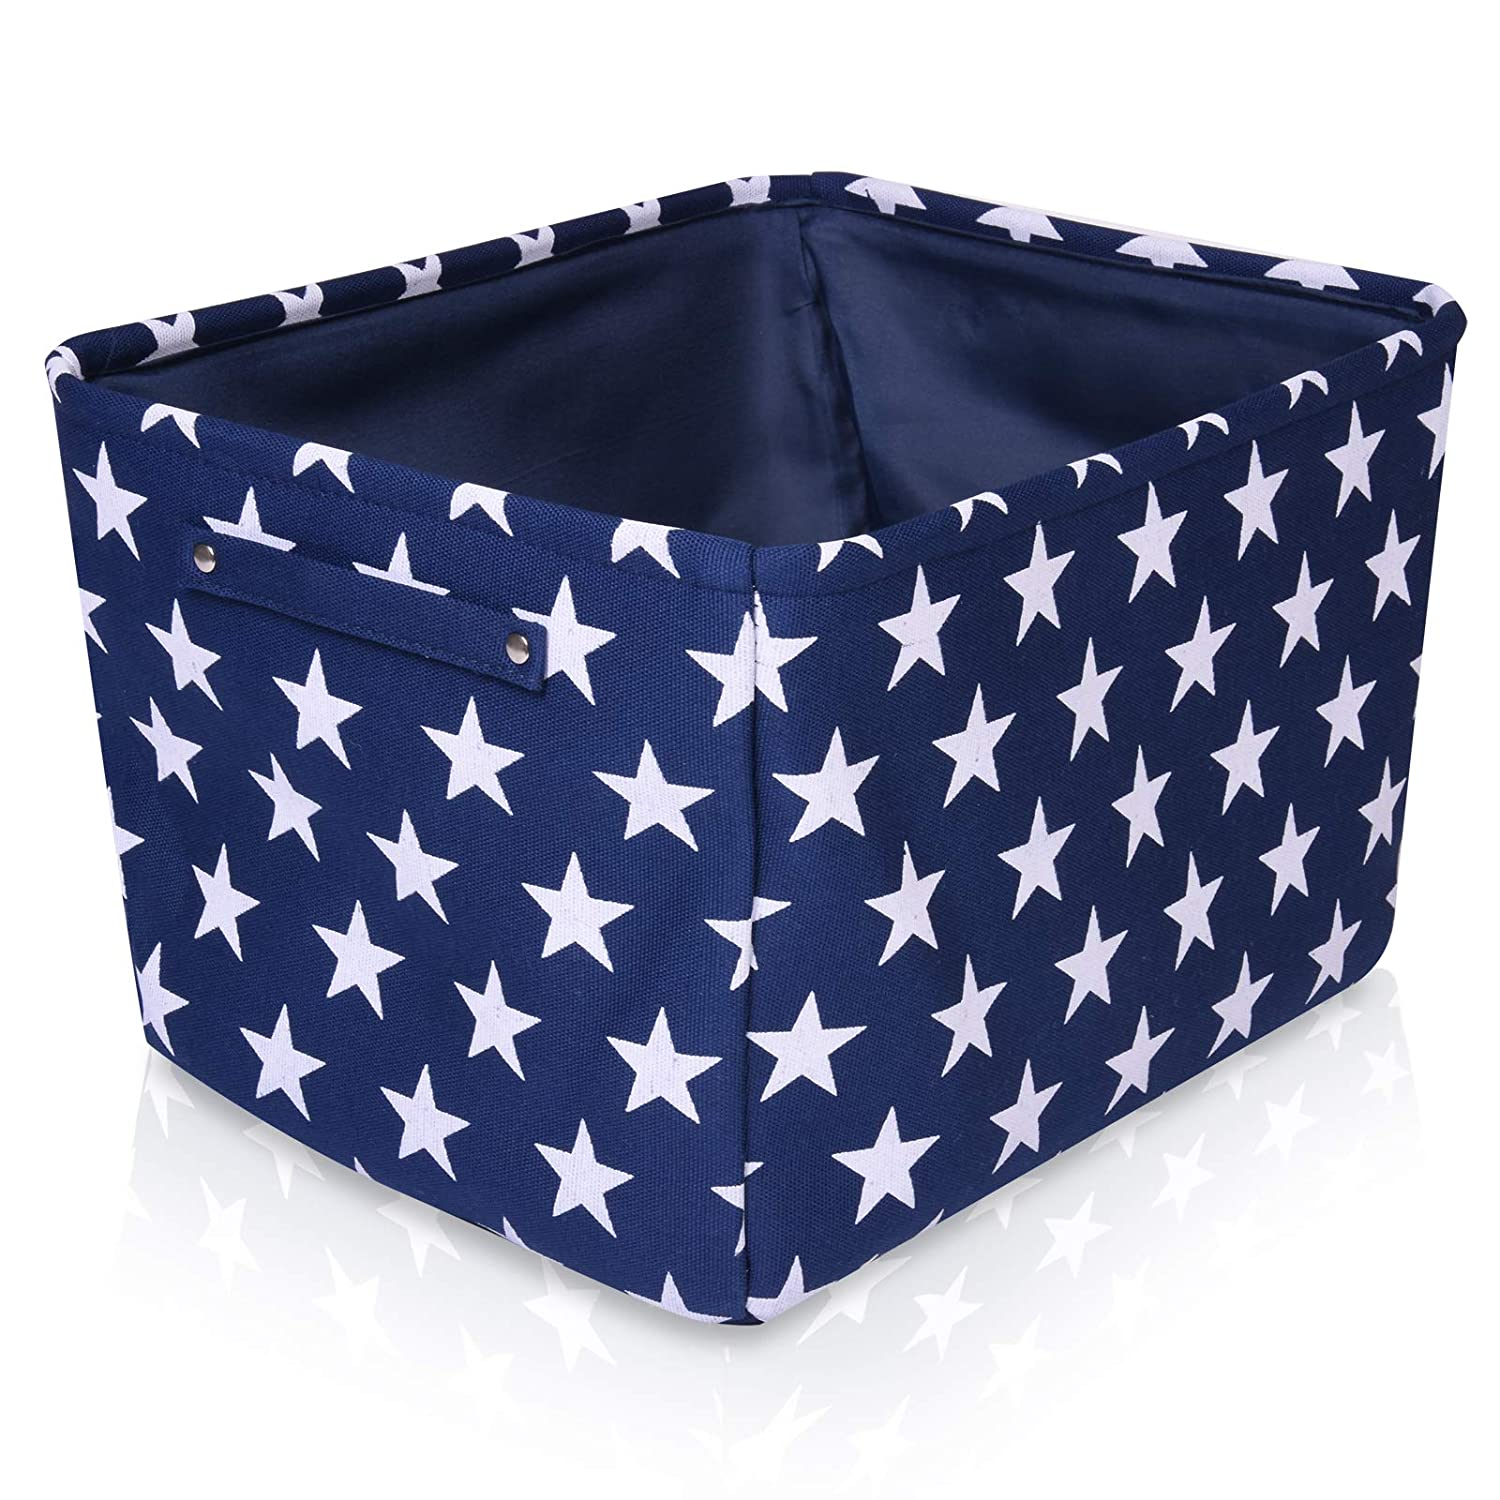 Blue Star Canvas Storage Basket - High Quality Rectangle Fabric Basket with White Stars – Perfect for Household Storage, Fabrics or Toys. Size: 40cms x 30cms x 25cms For the Love of Leisure